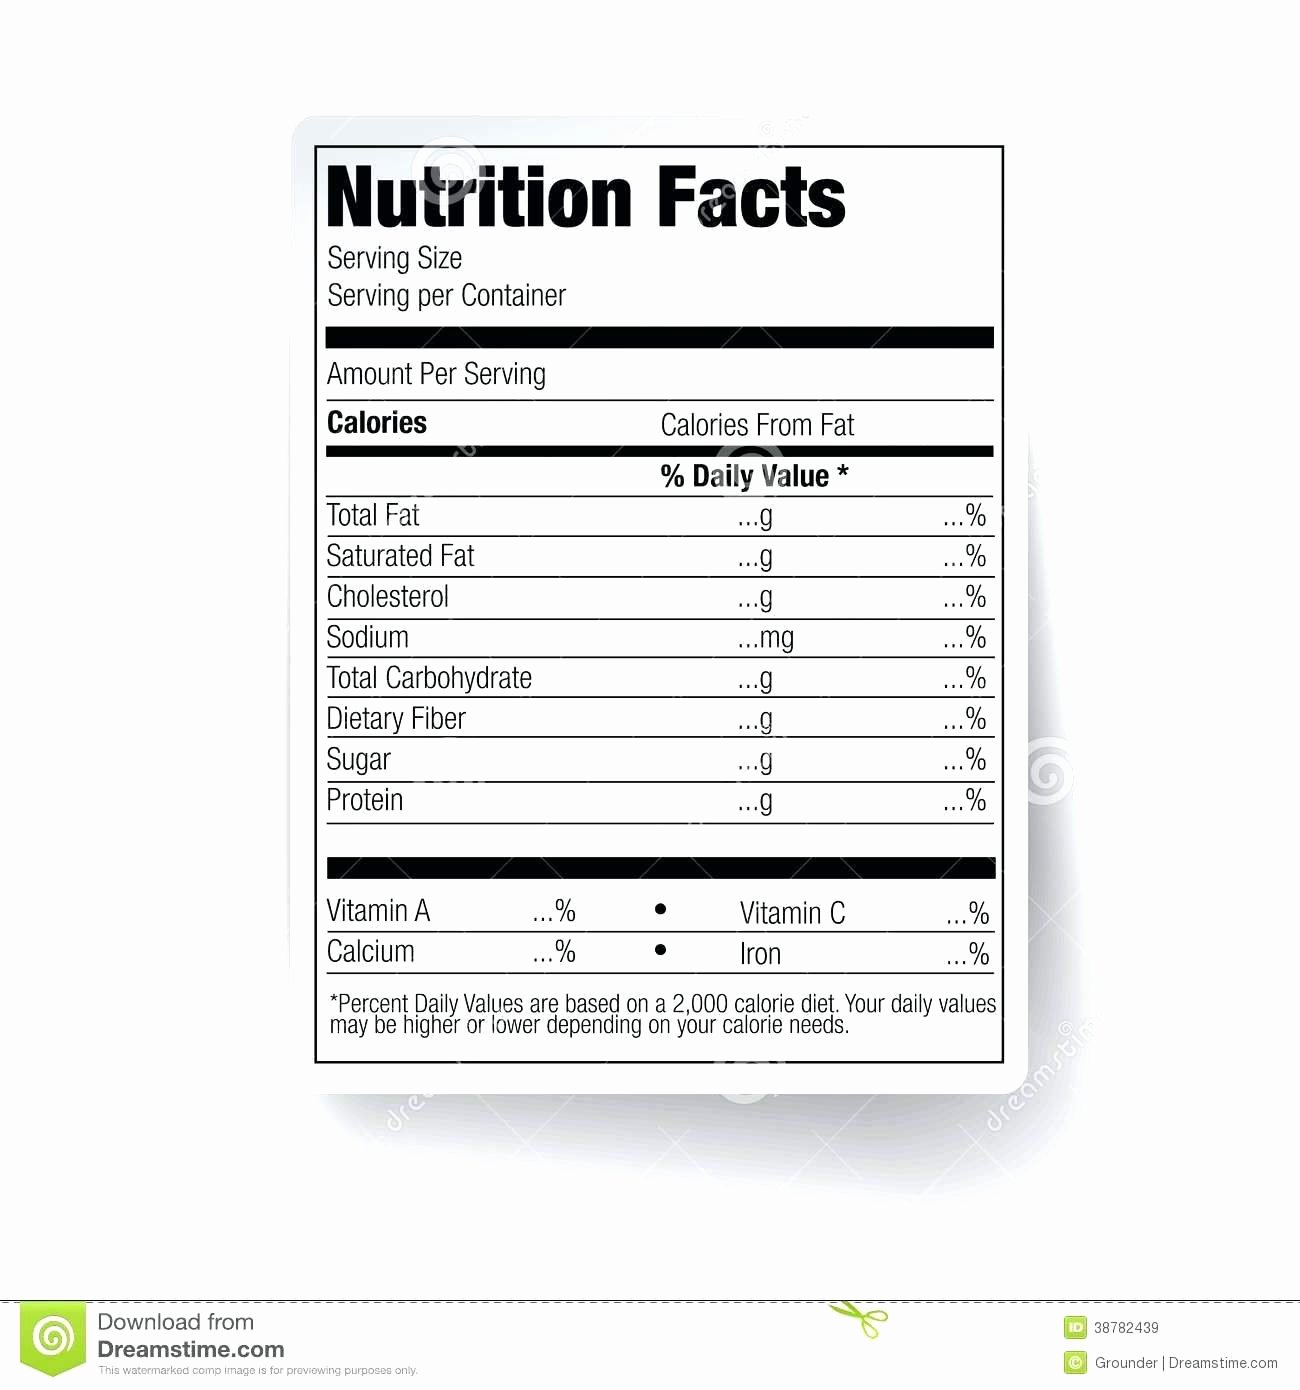 Nutrition Fact Label Maker Nutrition Ftempo Latter